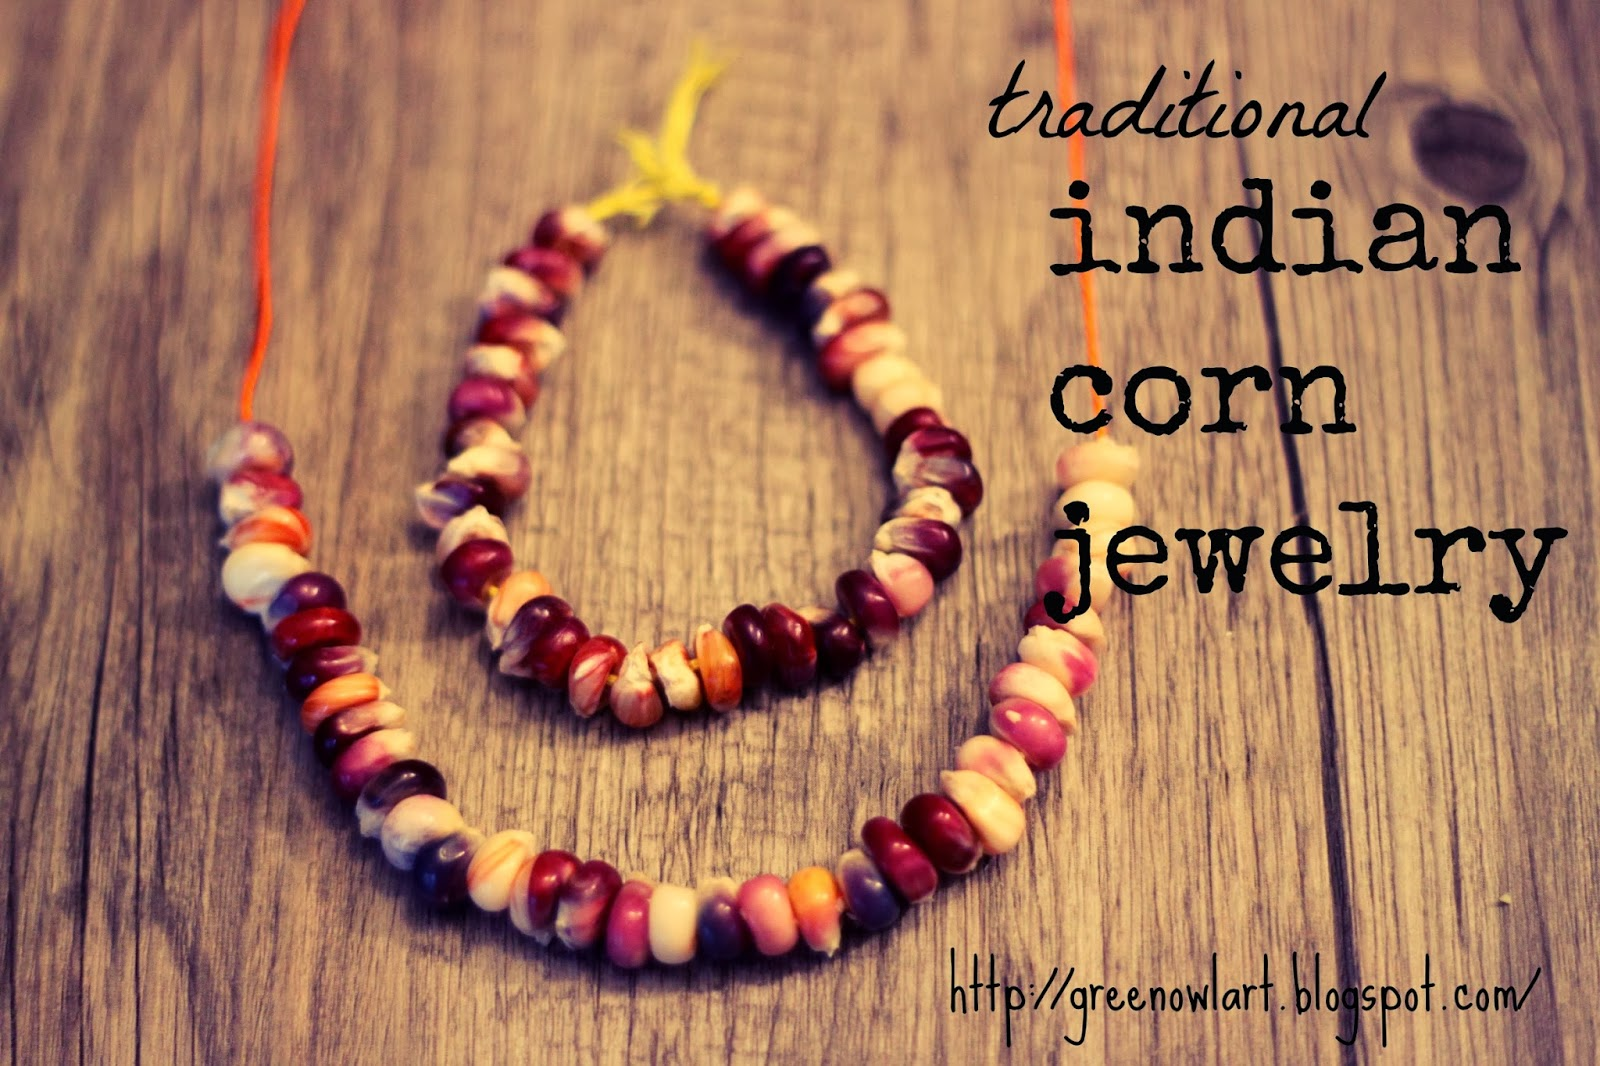 Indian Corn Jewelry